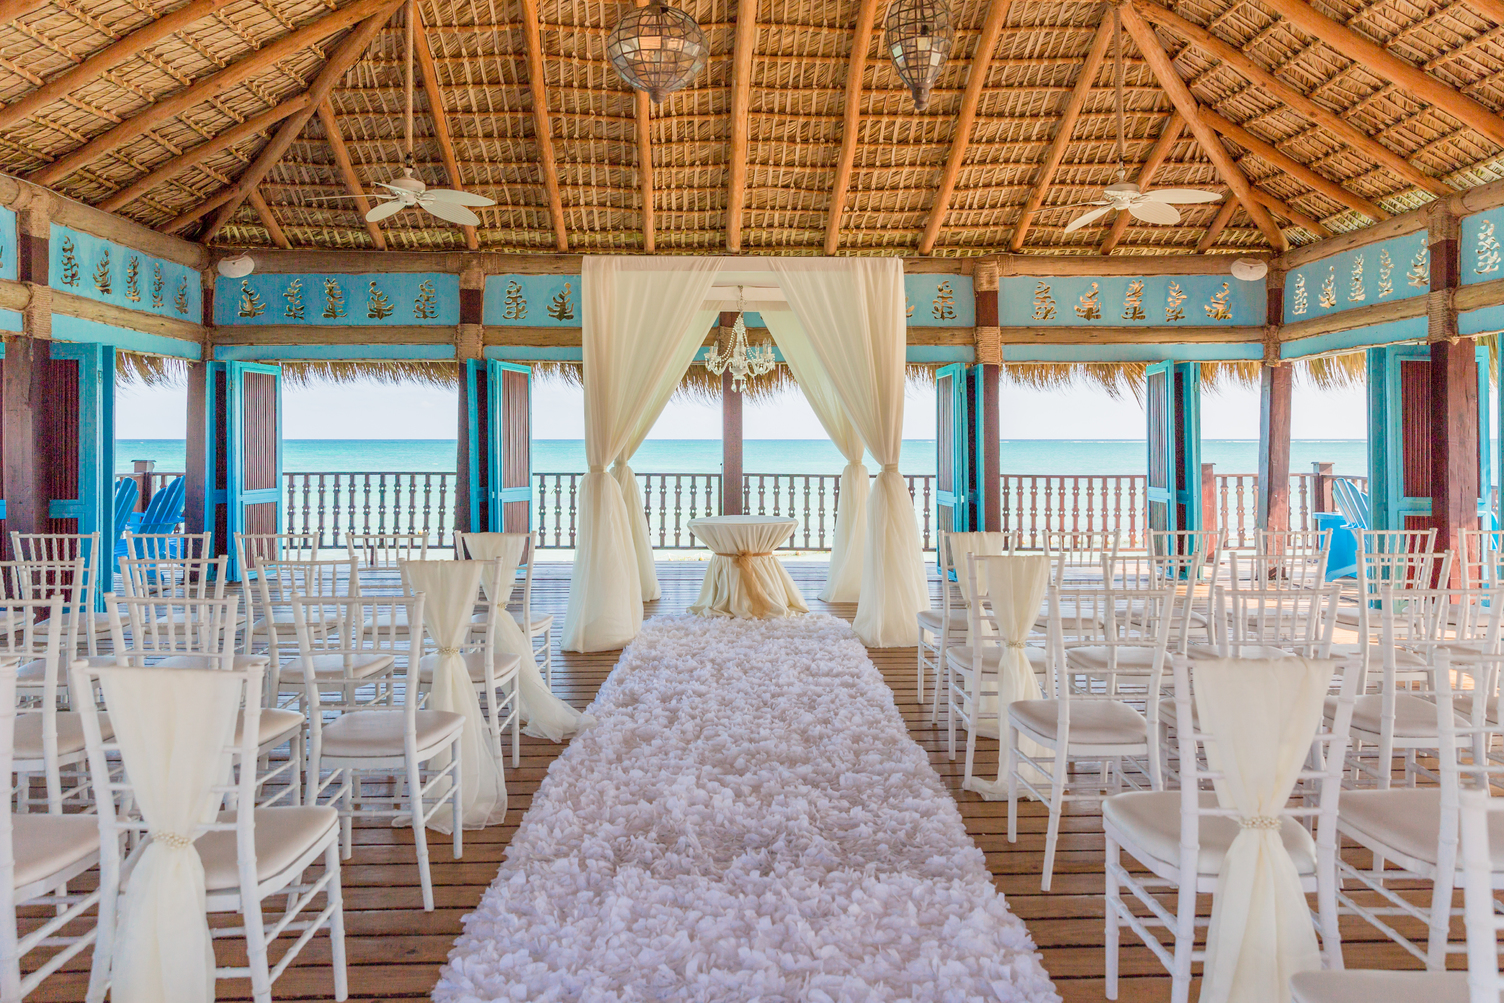 Sanctuary-Cap-Cana-Weddings-Blue-Marlin-Portico-2.jpg